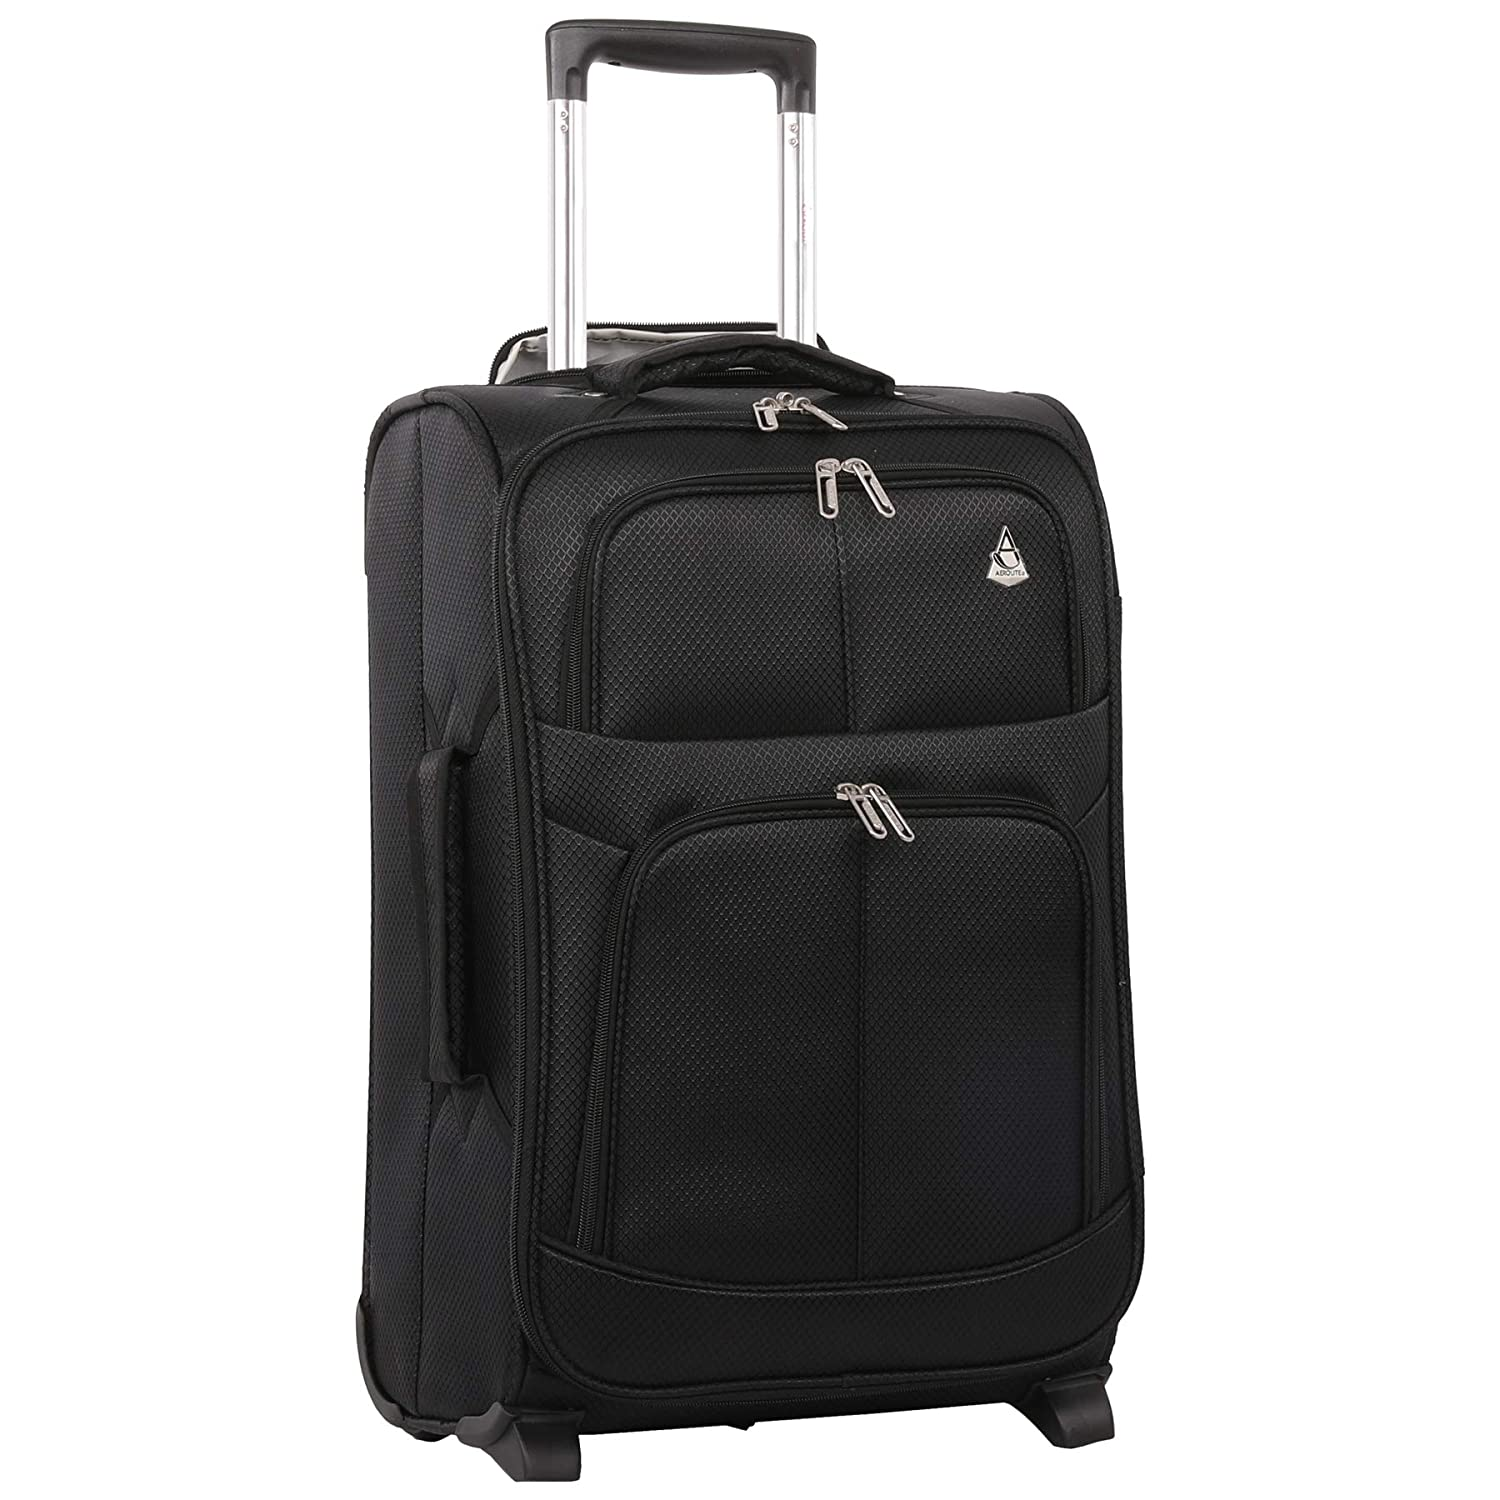 a261790ff Large Capacity Maximum Allowance 22x14x9 All Parts Carry On Luggage Bag |  Rolling Travel Suitcase Lightweight Small Soft Trolley for Men & Women |  Approved ...